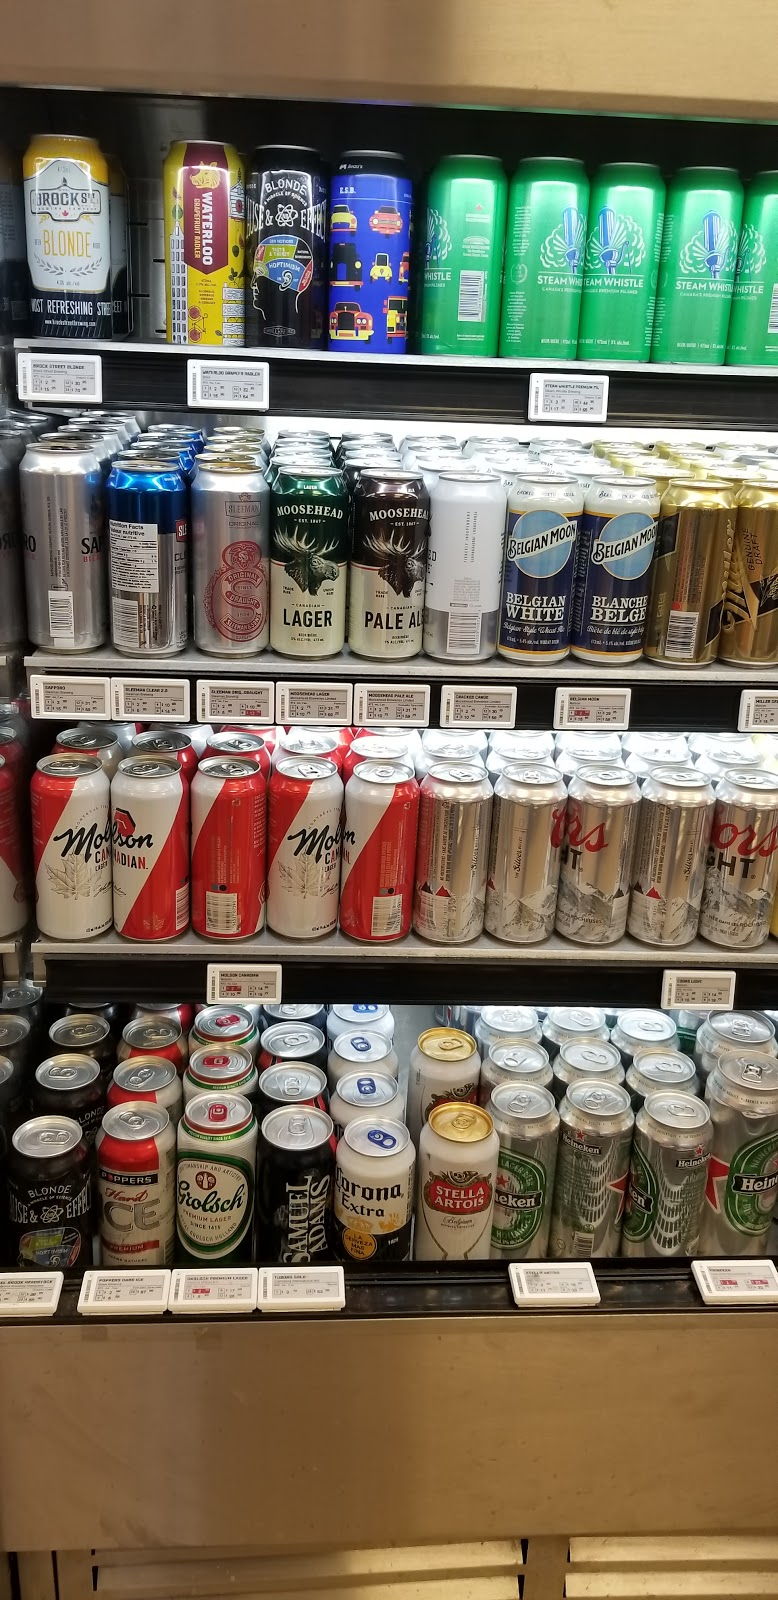 Beer Store | store | 257 Wentworth St W, Oshawa, ON L1J 1M9, Canada | 9055769595 OR +1 905-576-9595